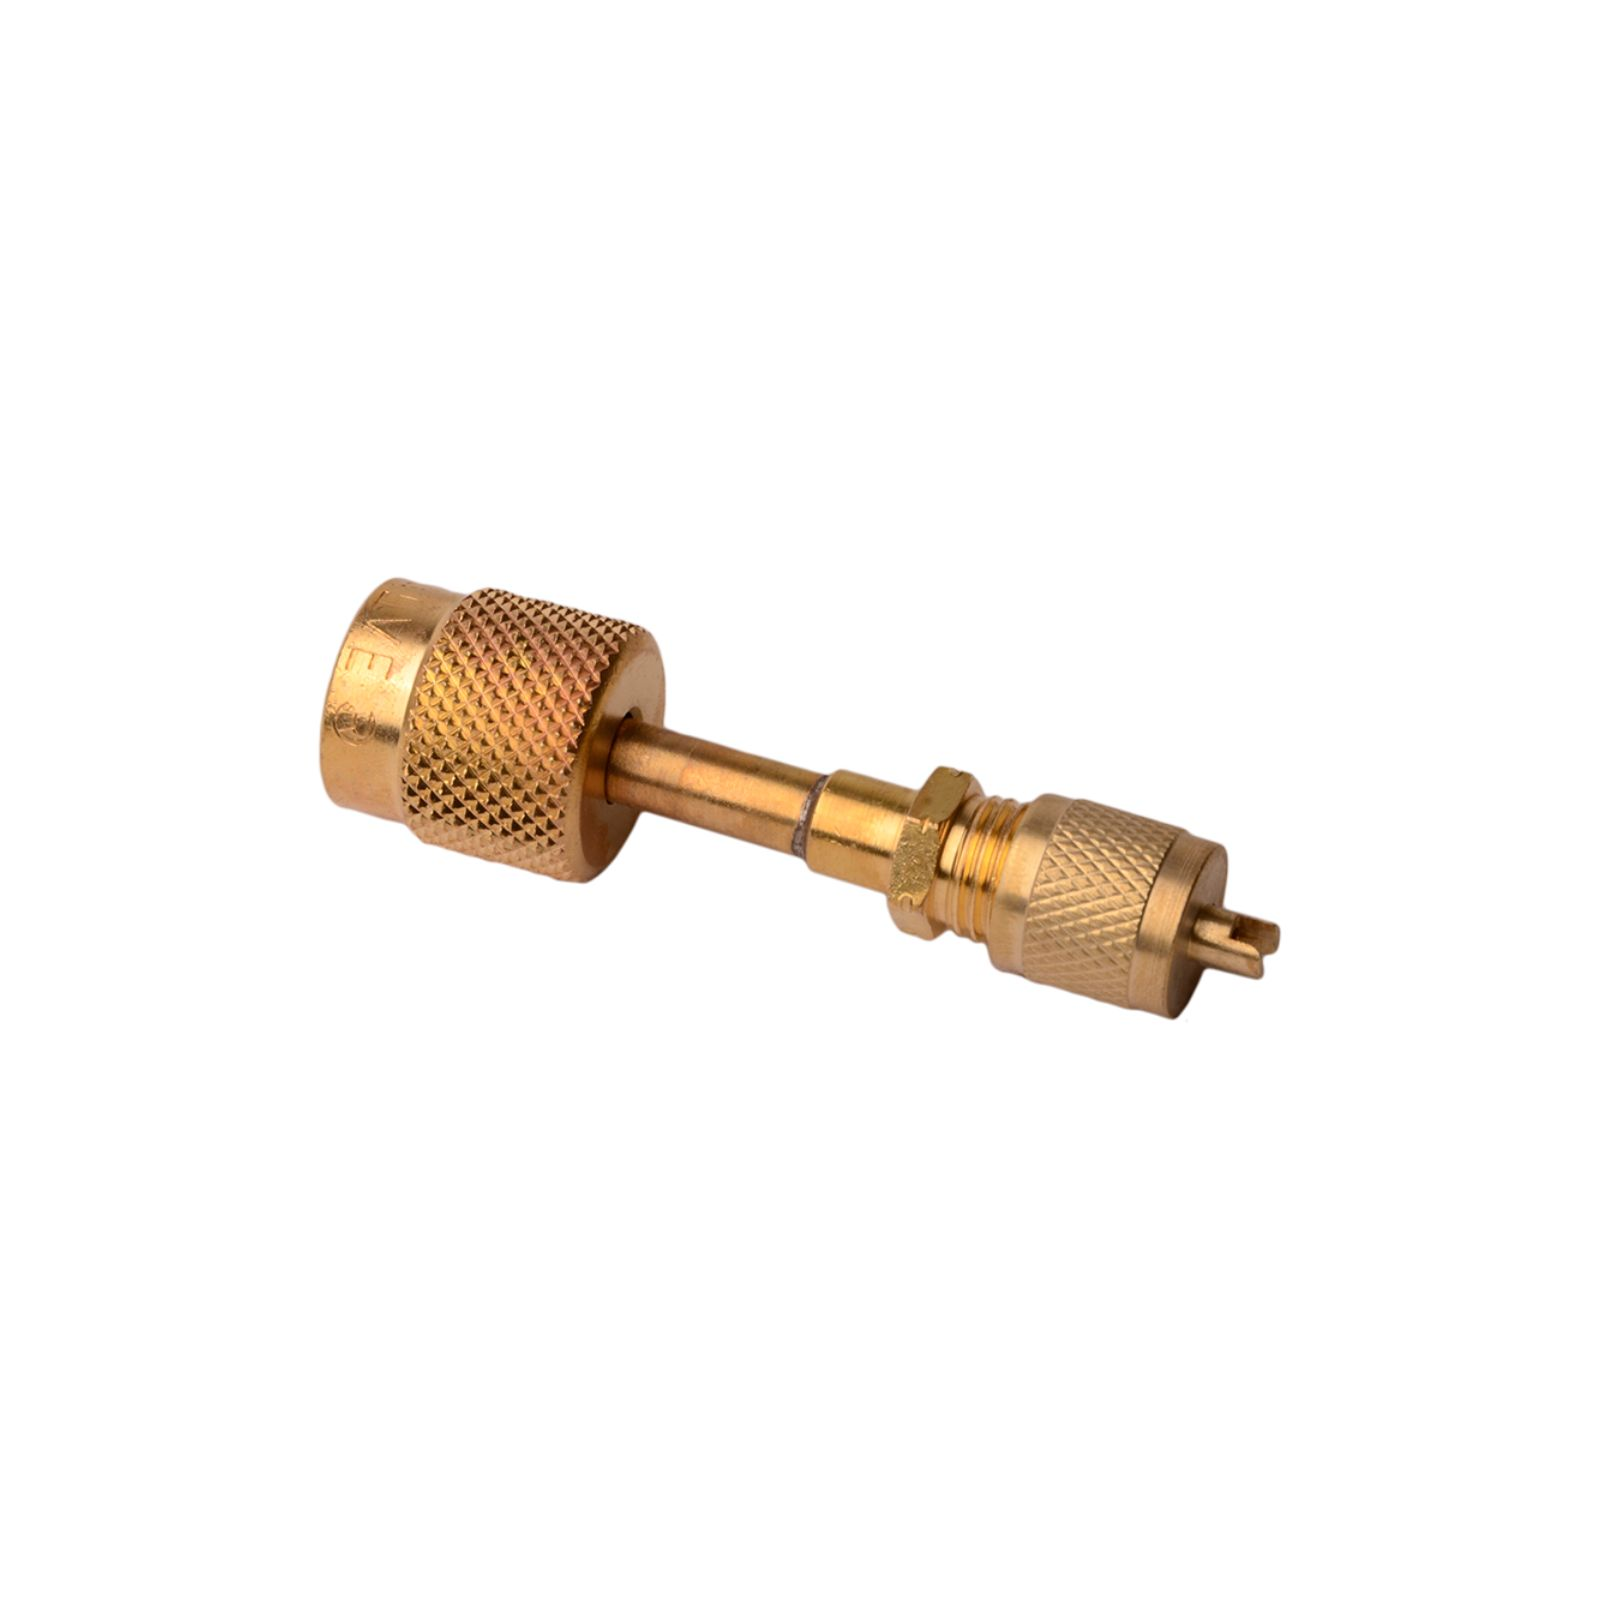 "DiversiTech MSA-45 - 1/4"" Male Flare X 1/2"" - 20 UNF Female Brass Adapter"